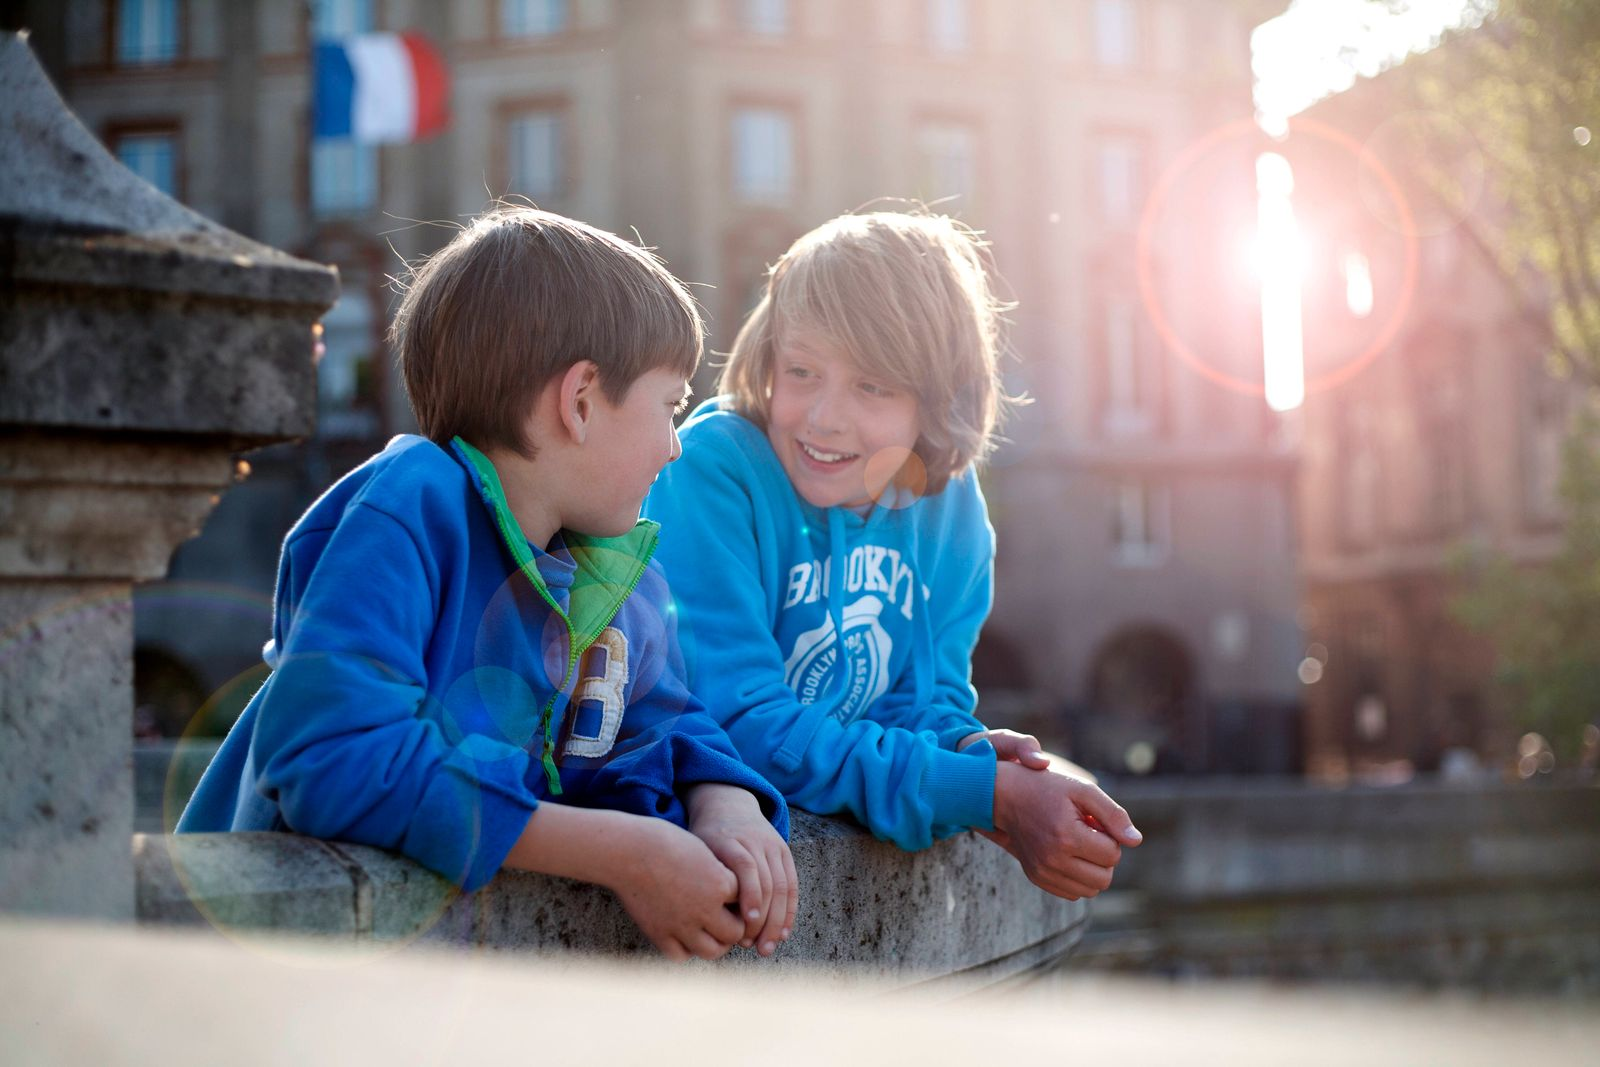 Boys talking while leaning on retaining wall in city model released Symbolfoto AJOF01543